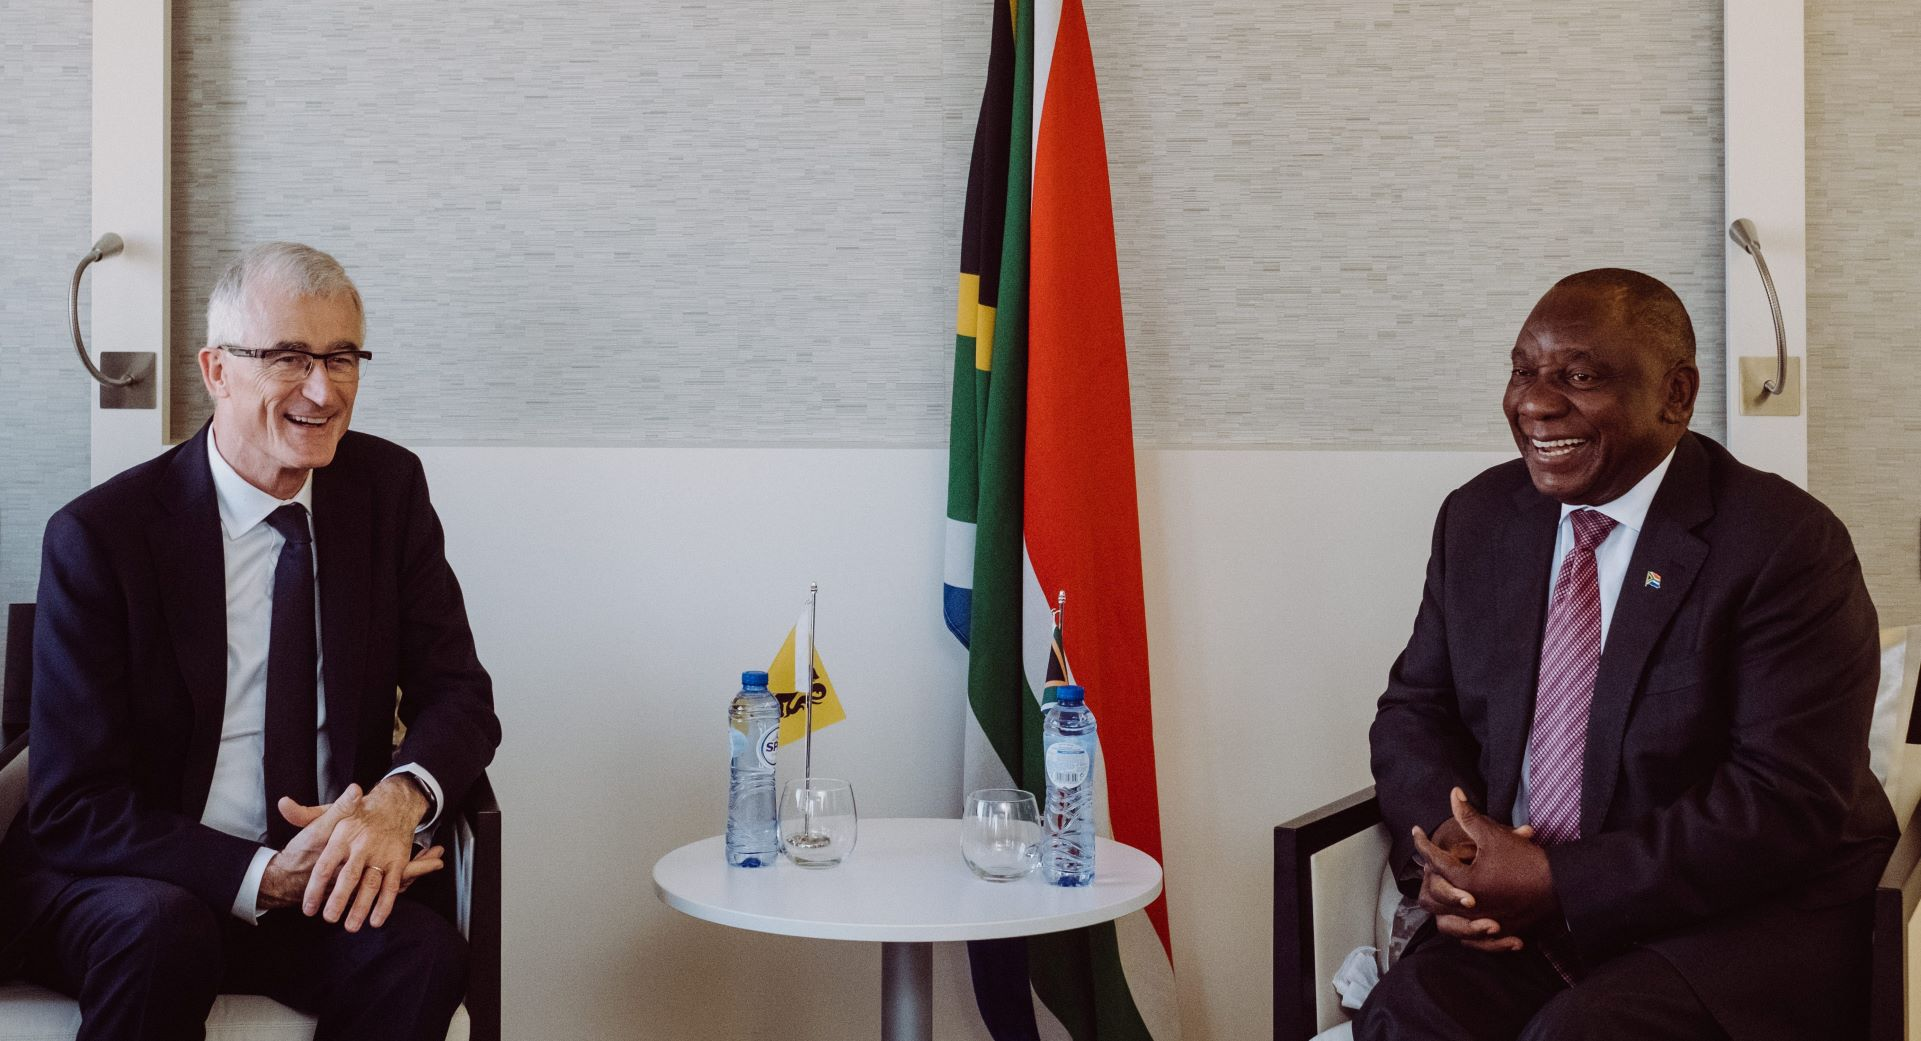 Minister-president Bourgeois and President Ramaphosa in Brussels